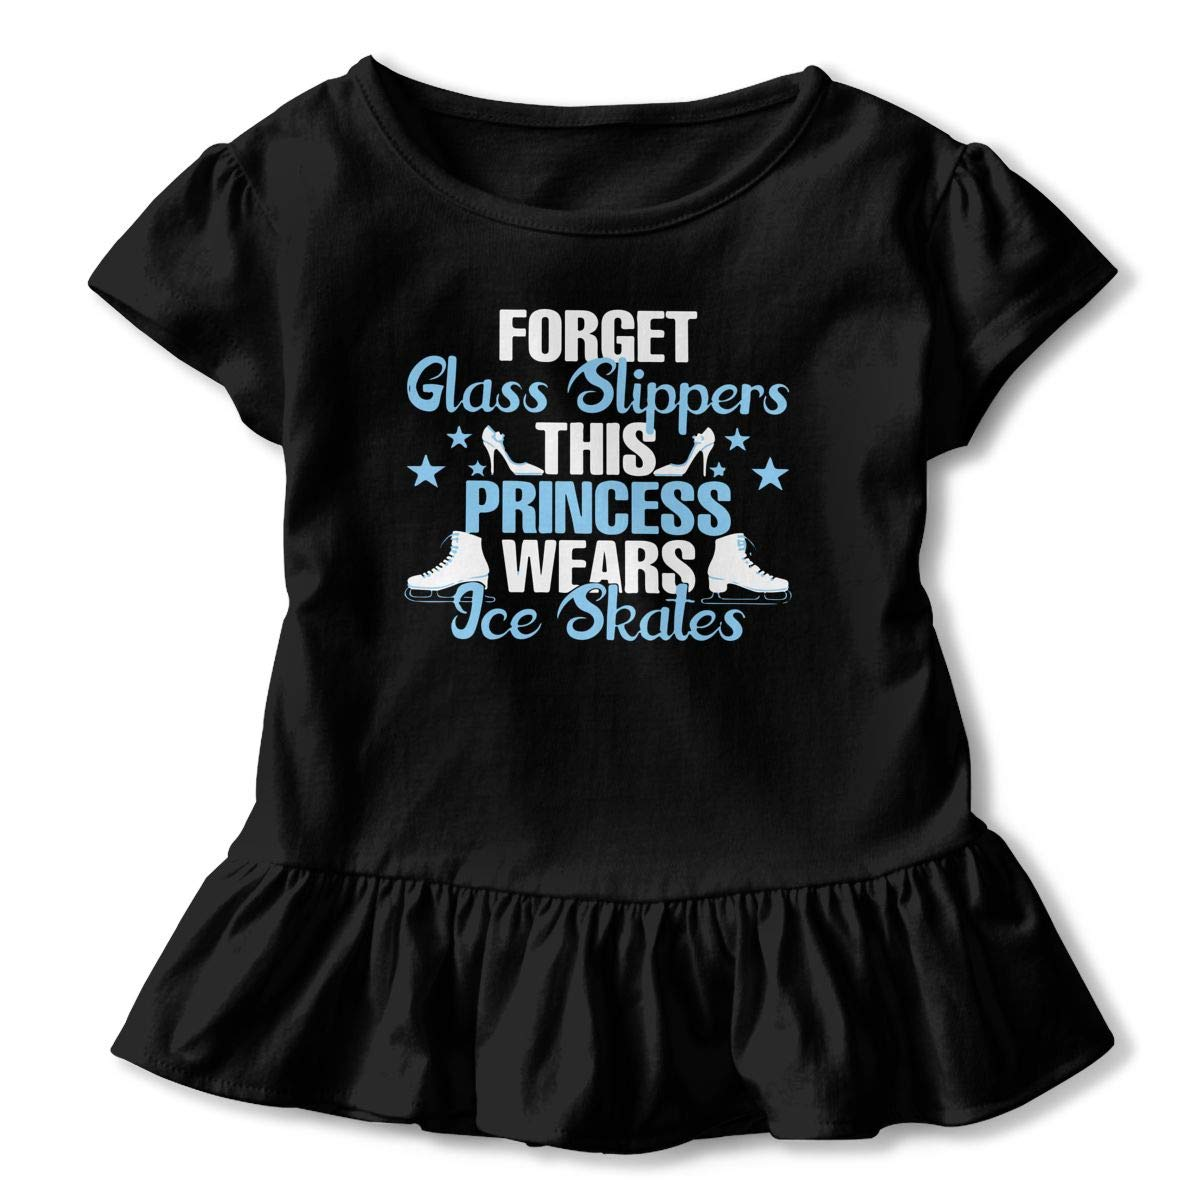 This Princess Wears Ice Skates Toddler Baby Girls Short Sleeve Ruffle T-Shirt